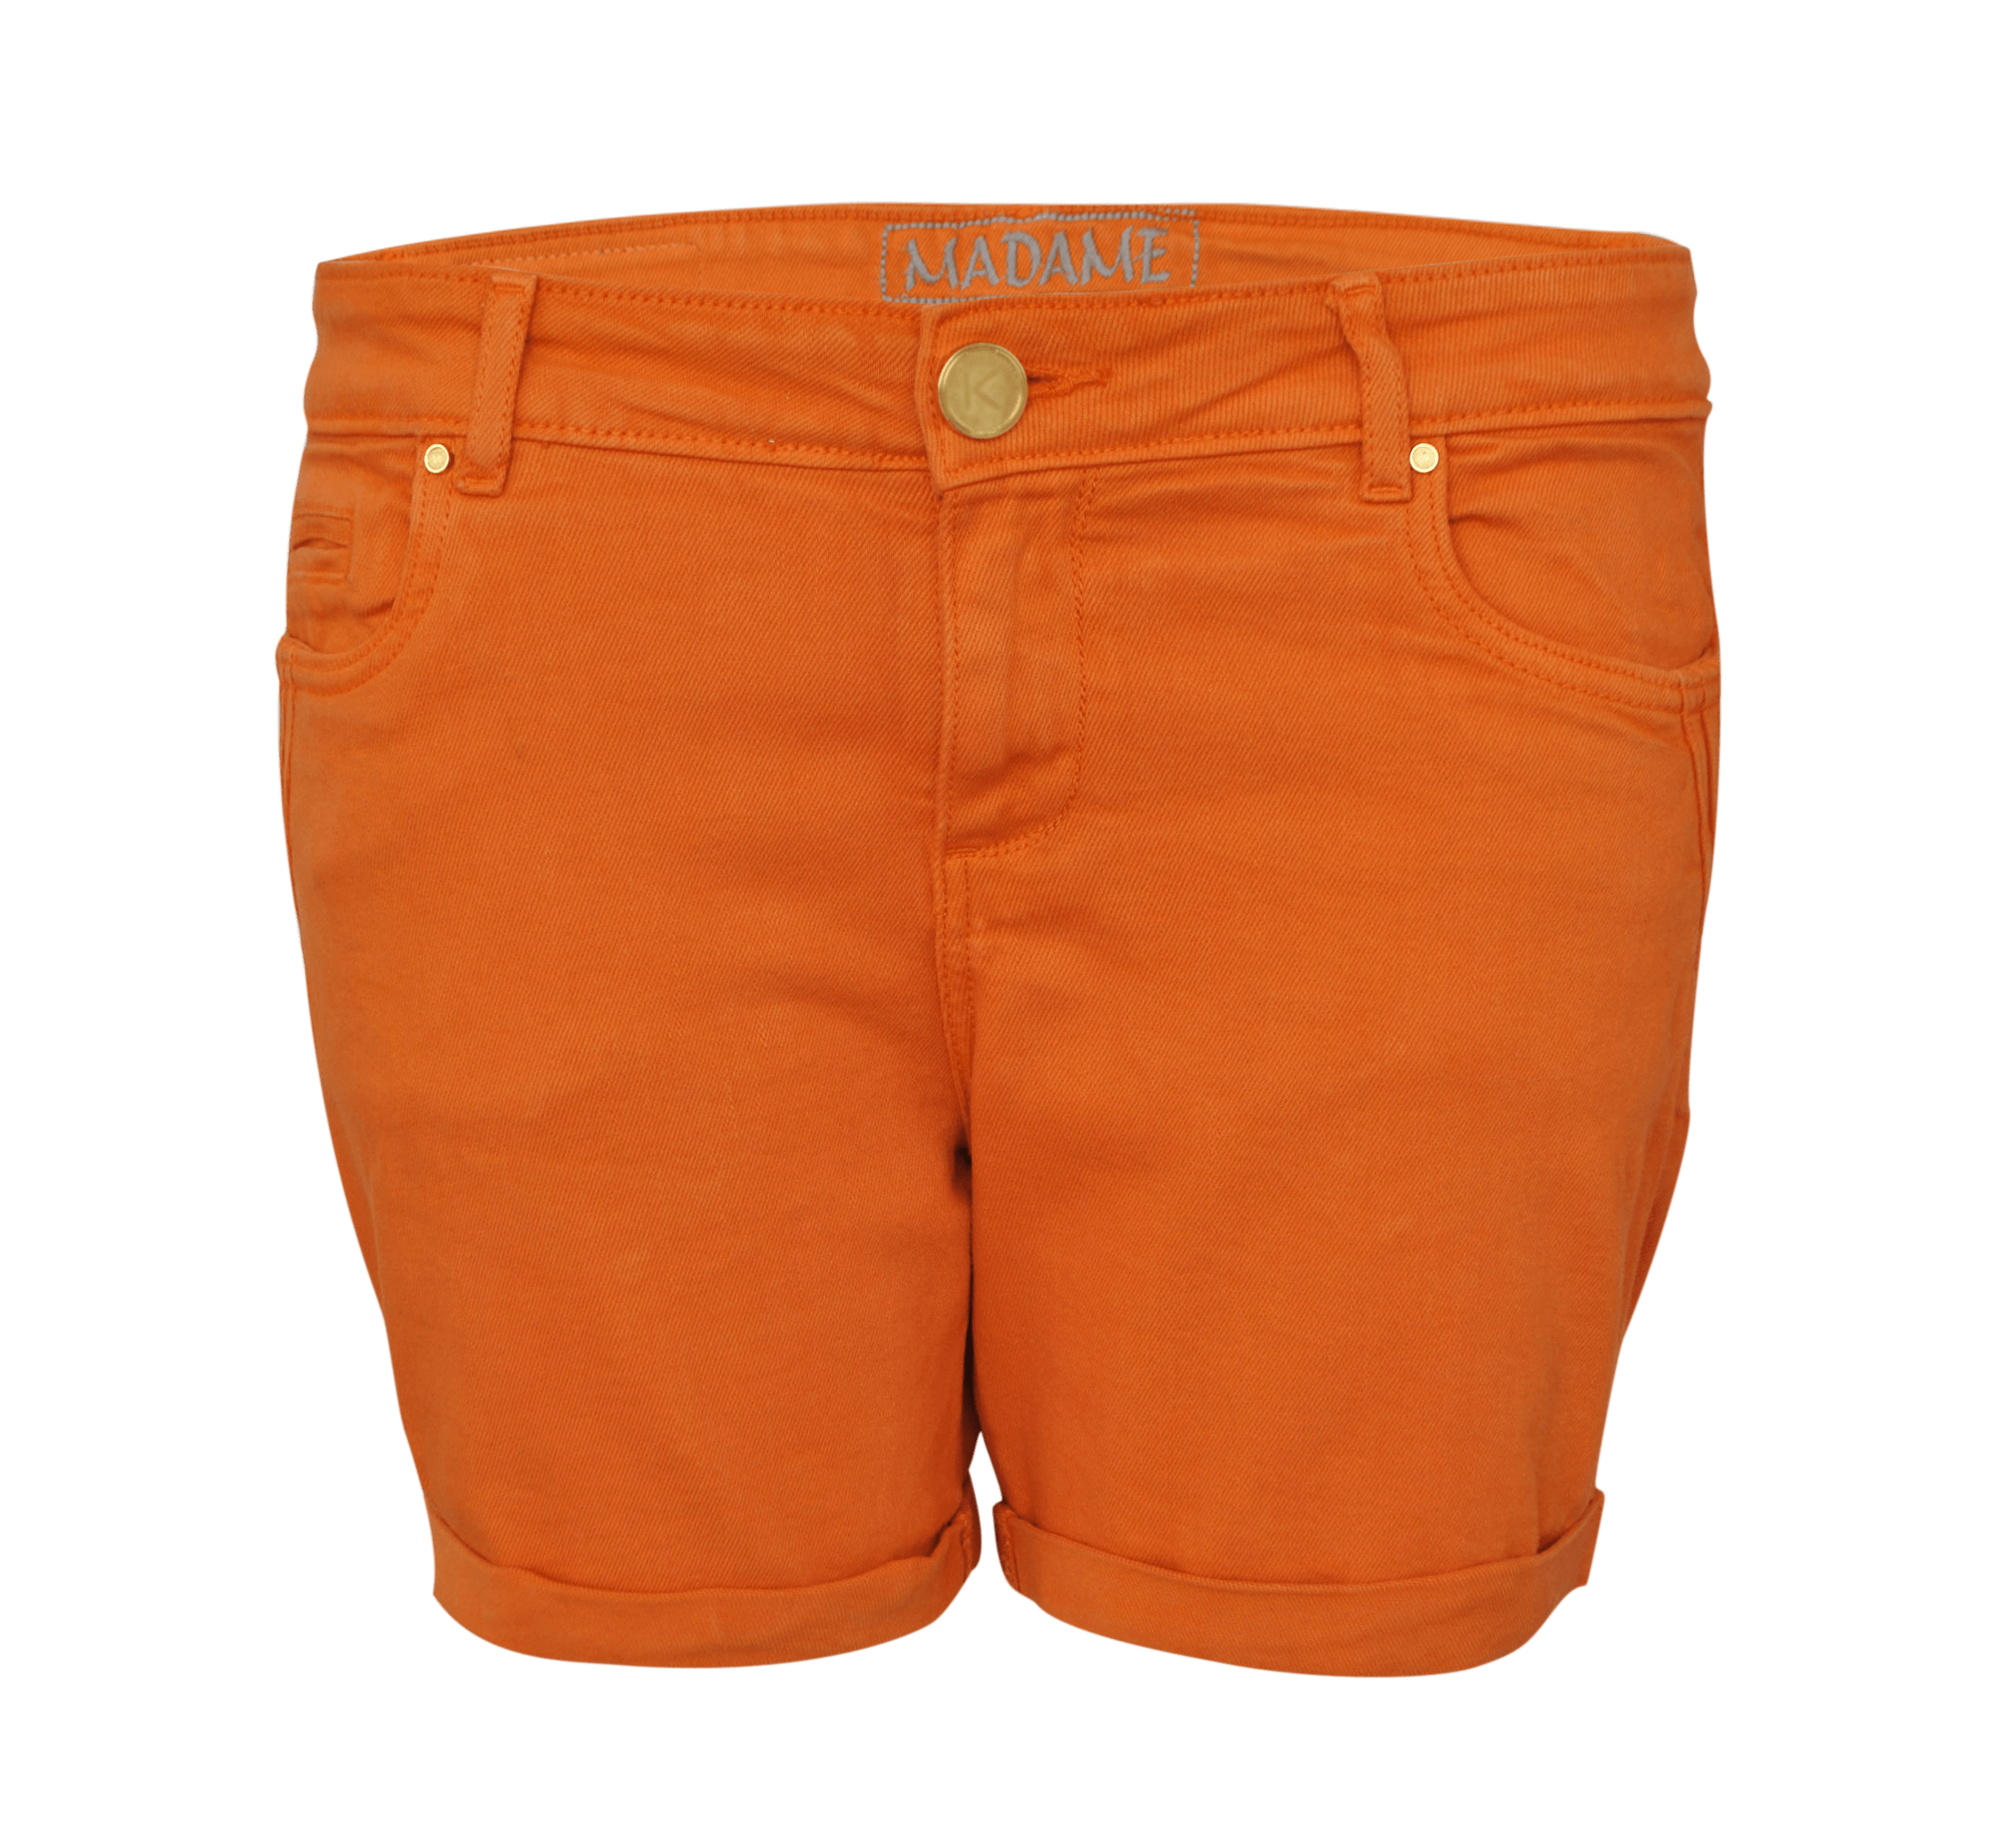 Pants transparent orange. Short pant png stickpng